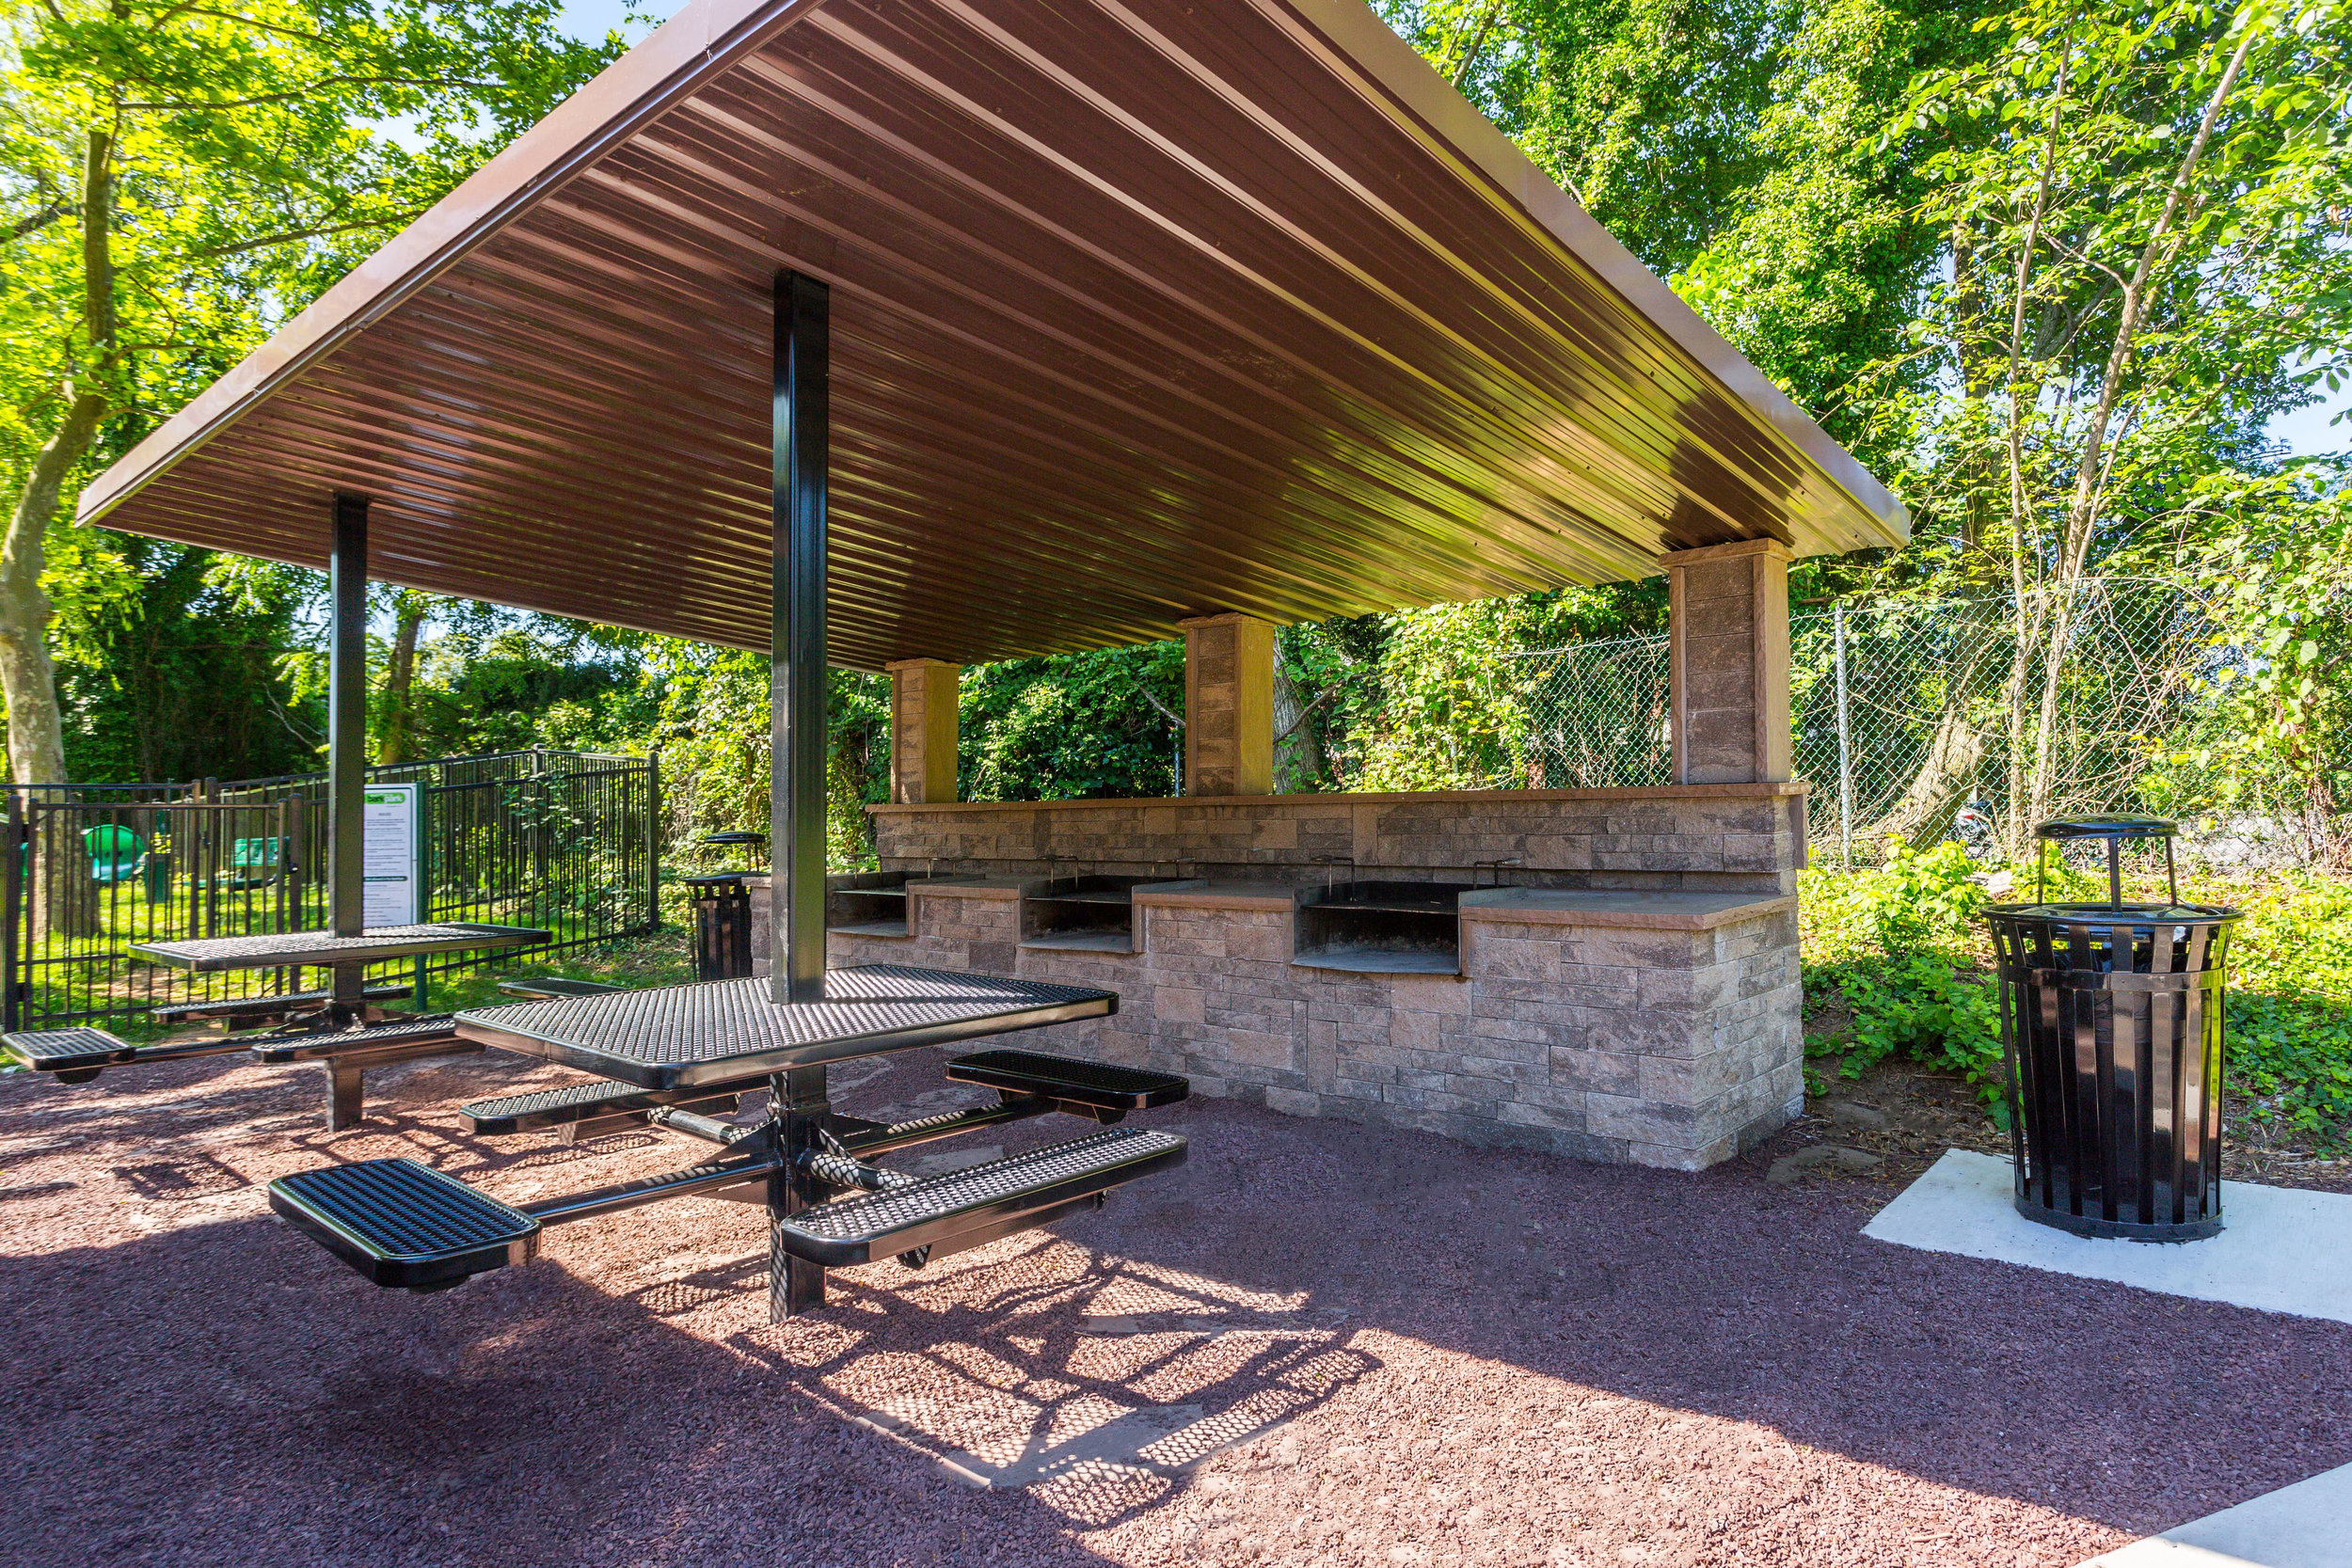 Annen Woods Apartments Grilling Area in Pikesville, MD